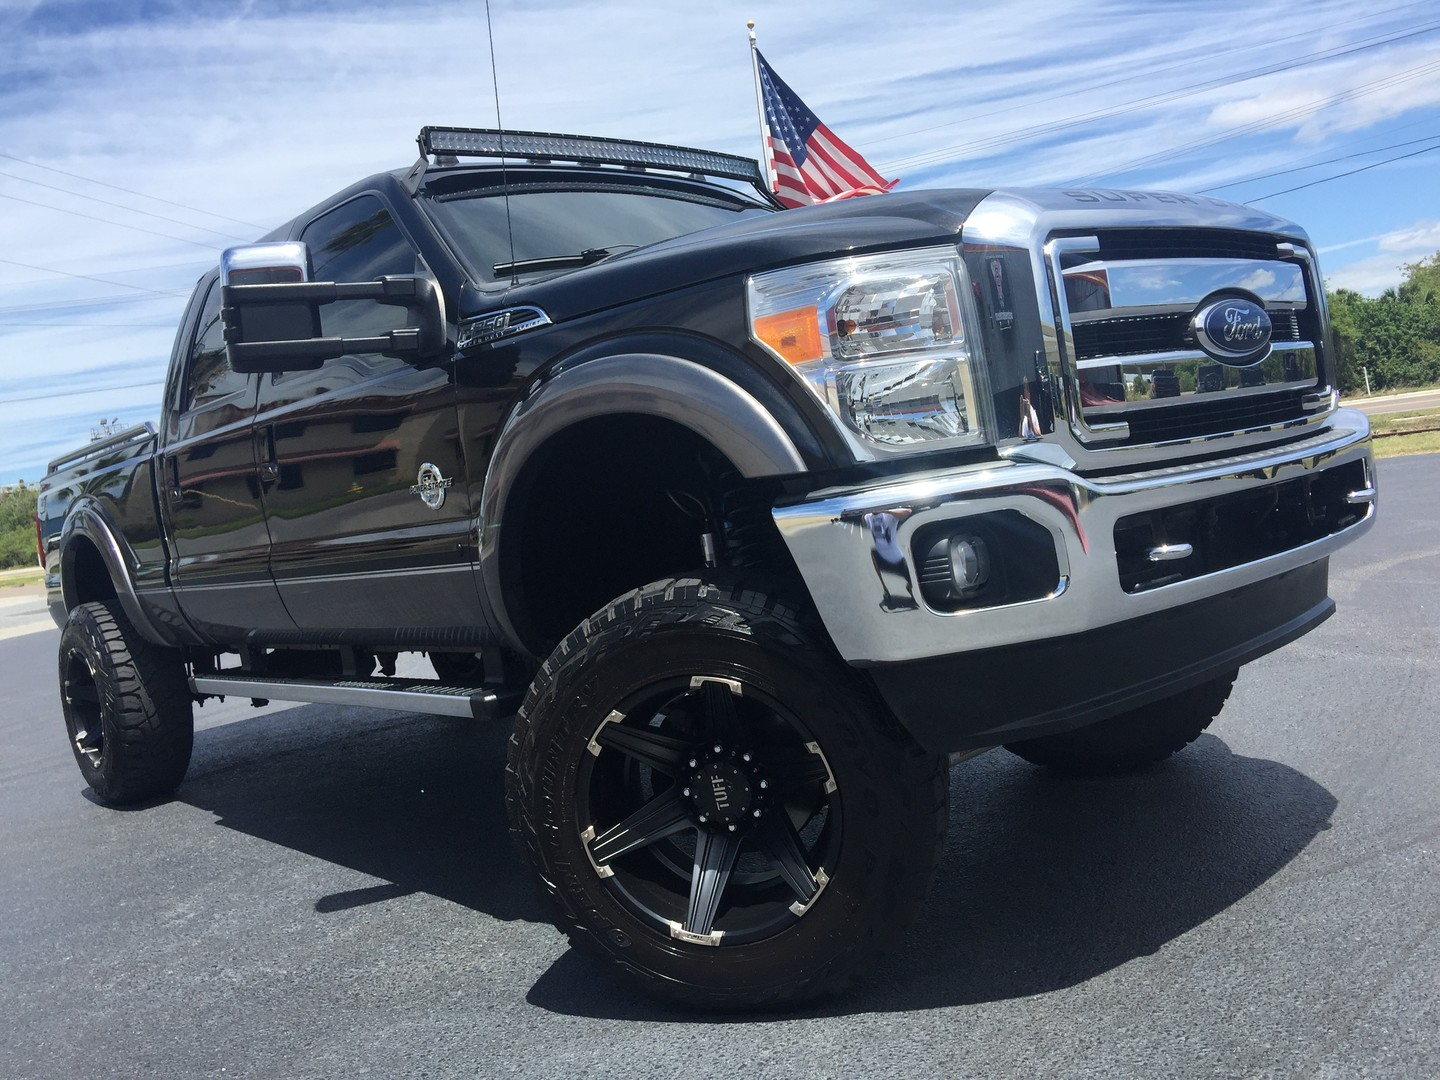 2013 Lifted F250 For Sale Tampa Fl Autos Post